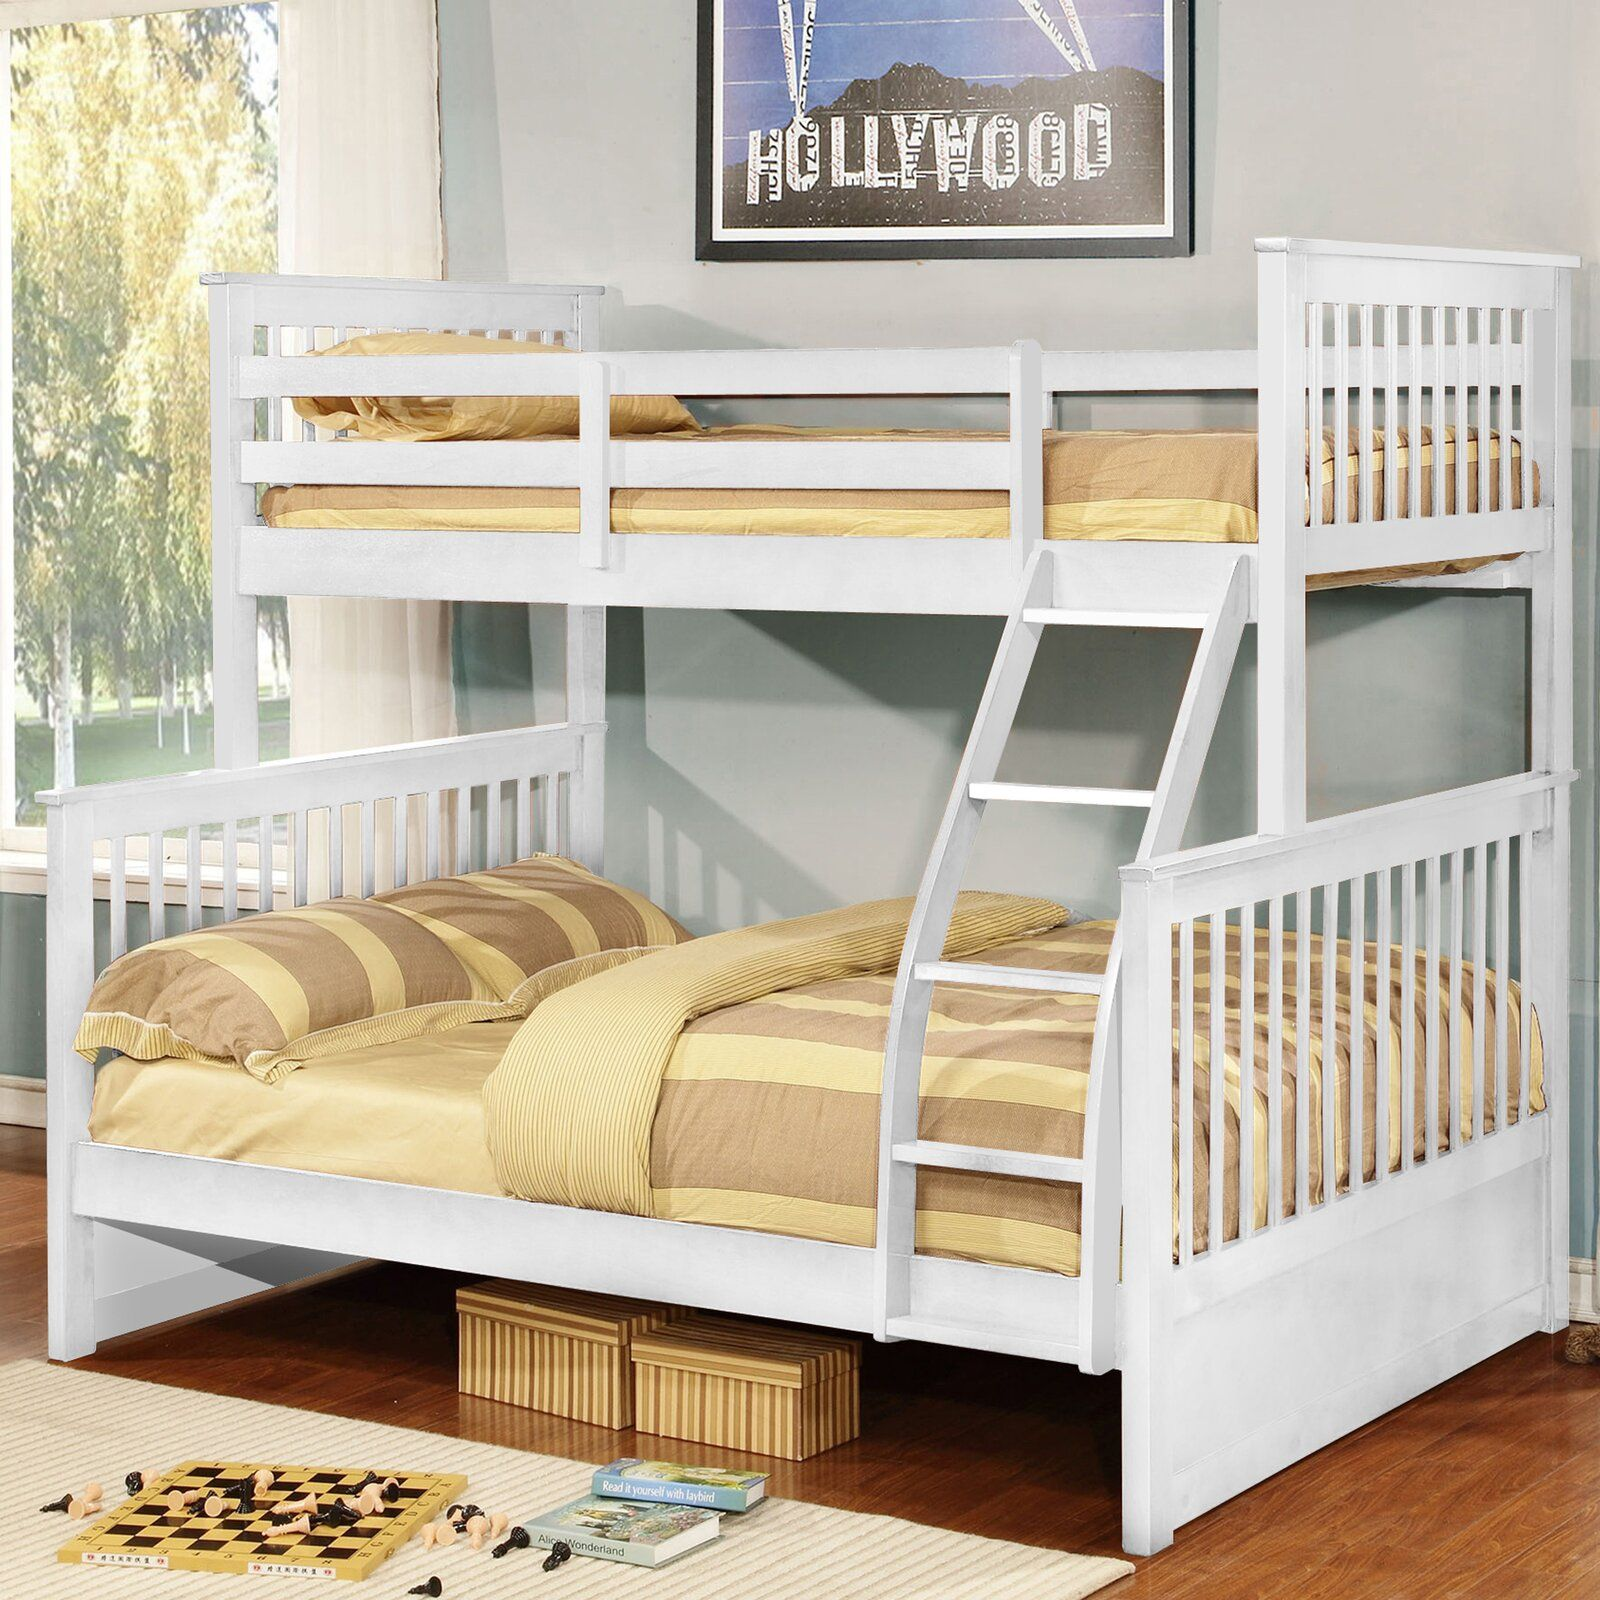 Warmley Twin Over Full Bunk Bed In 2020 Full Bunk Beds Bunk Beds Bunk Beds With Storage